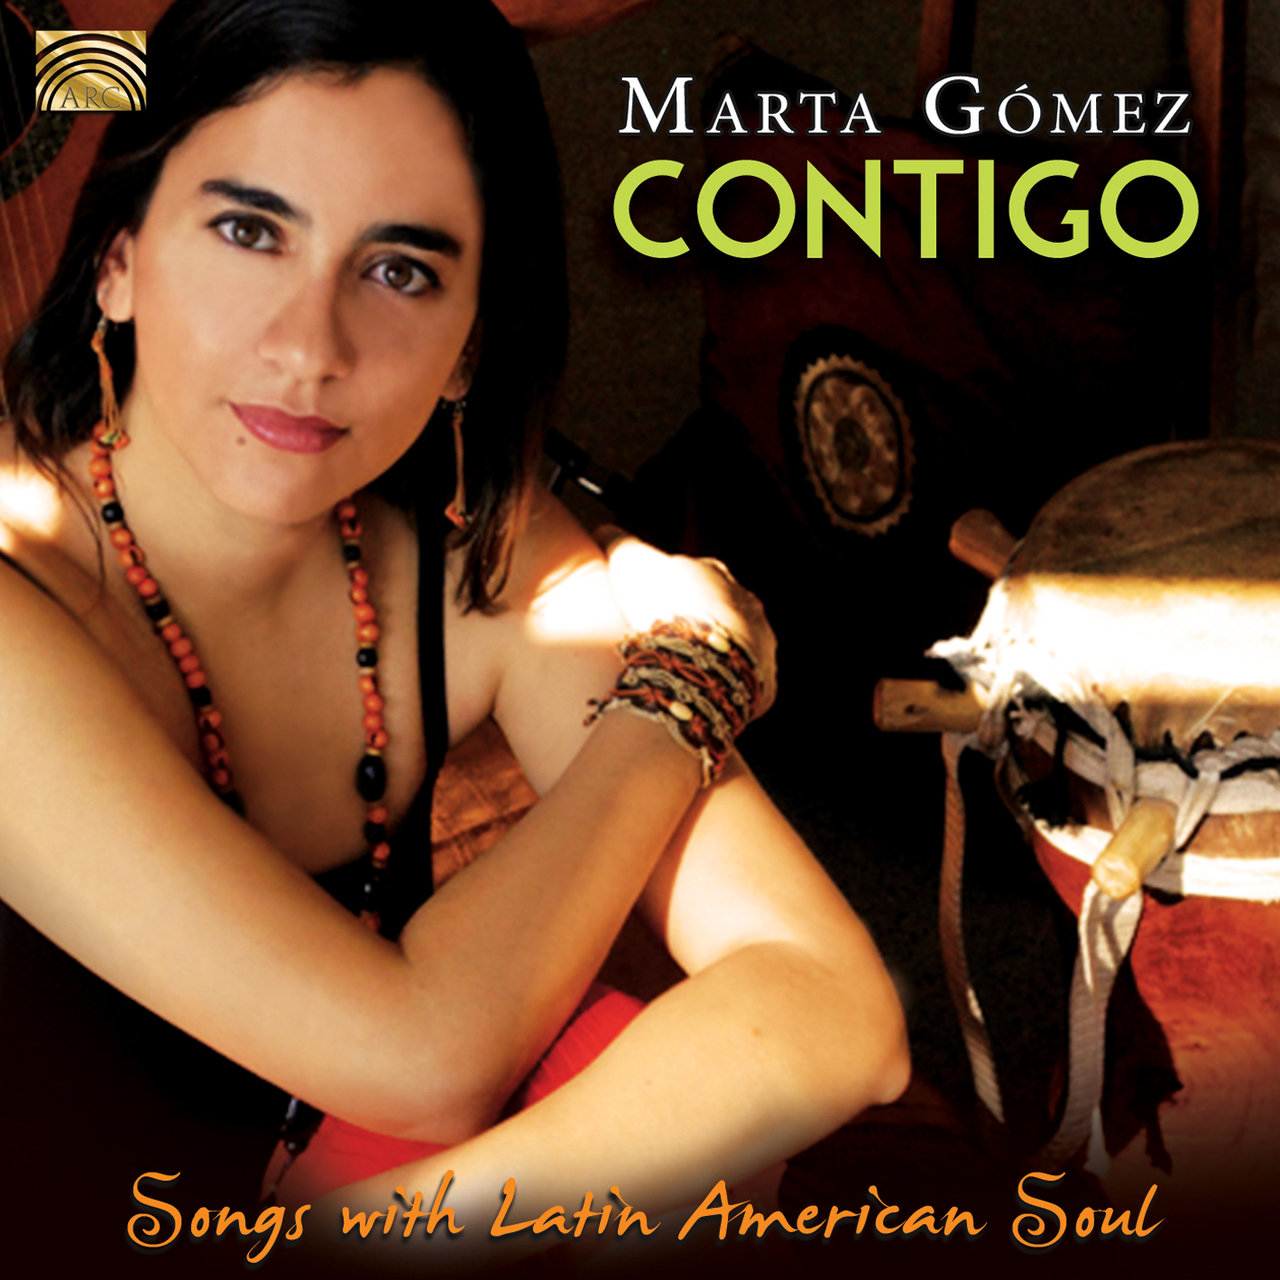 Songs with Latin American Soul